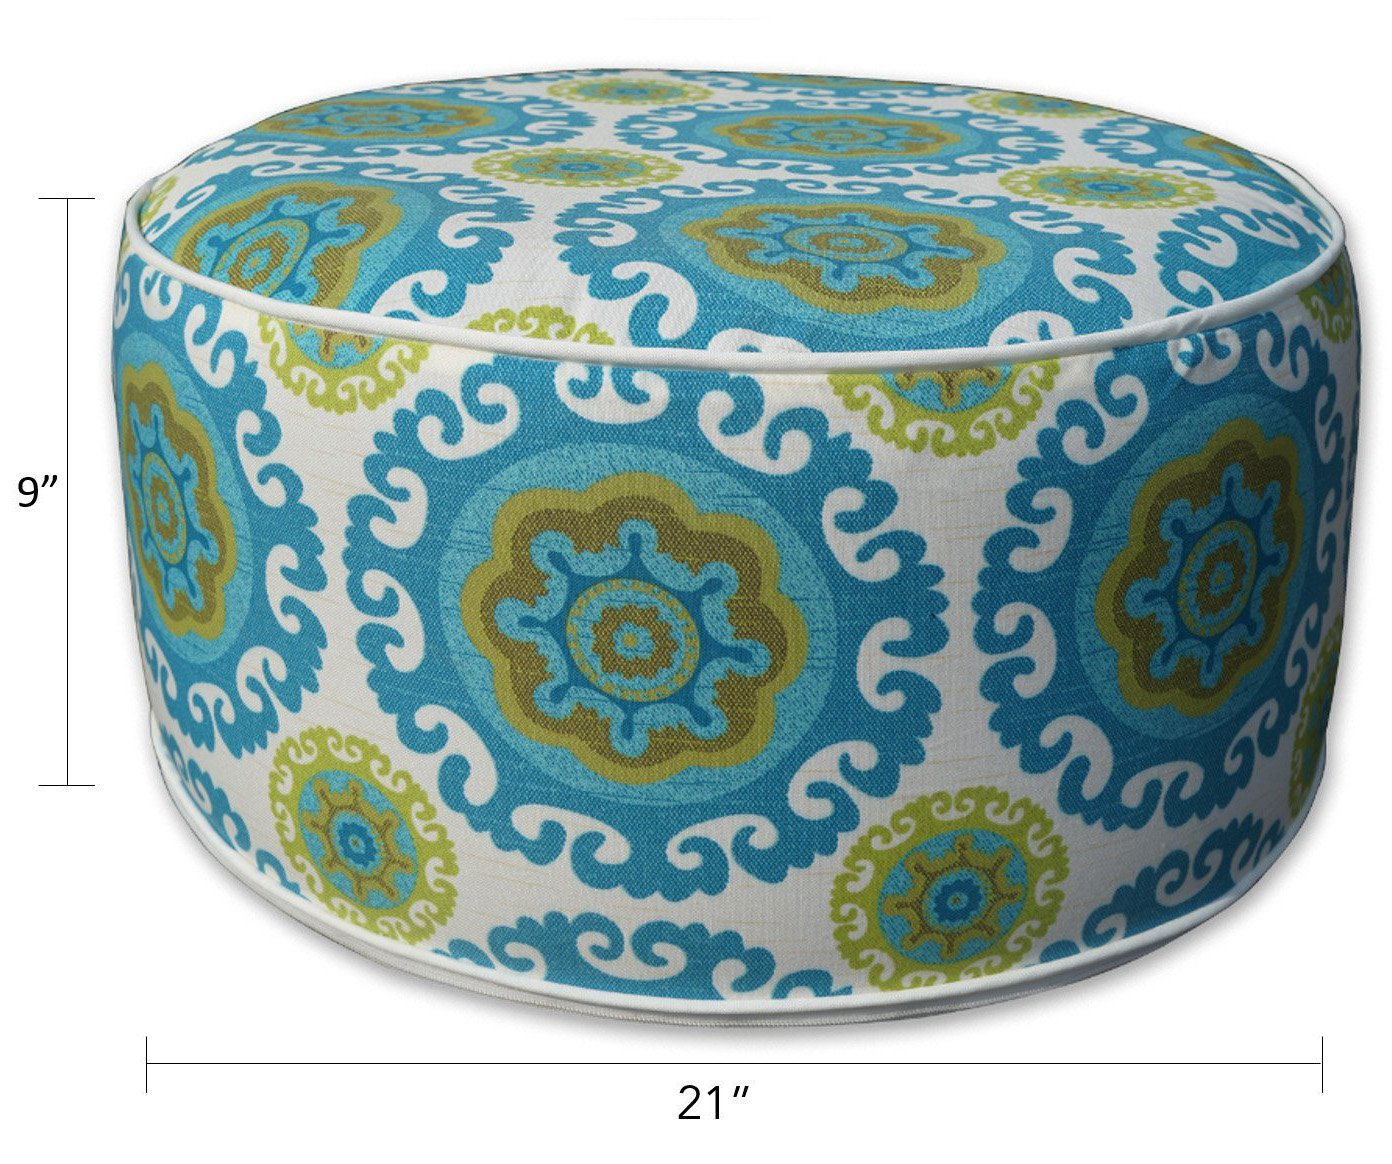 Kozyard Inflatable Stool Ottoman Used for Indoor or Outdoor, Kids or Adults, Camping or Home (Blue) by Kozyard (Image #3)